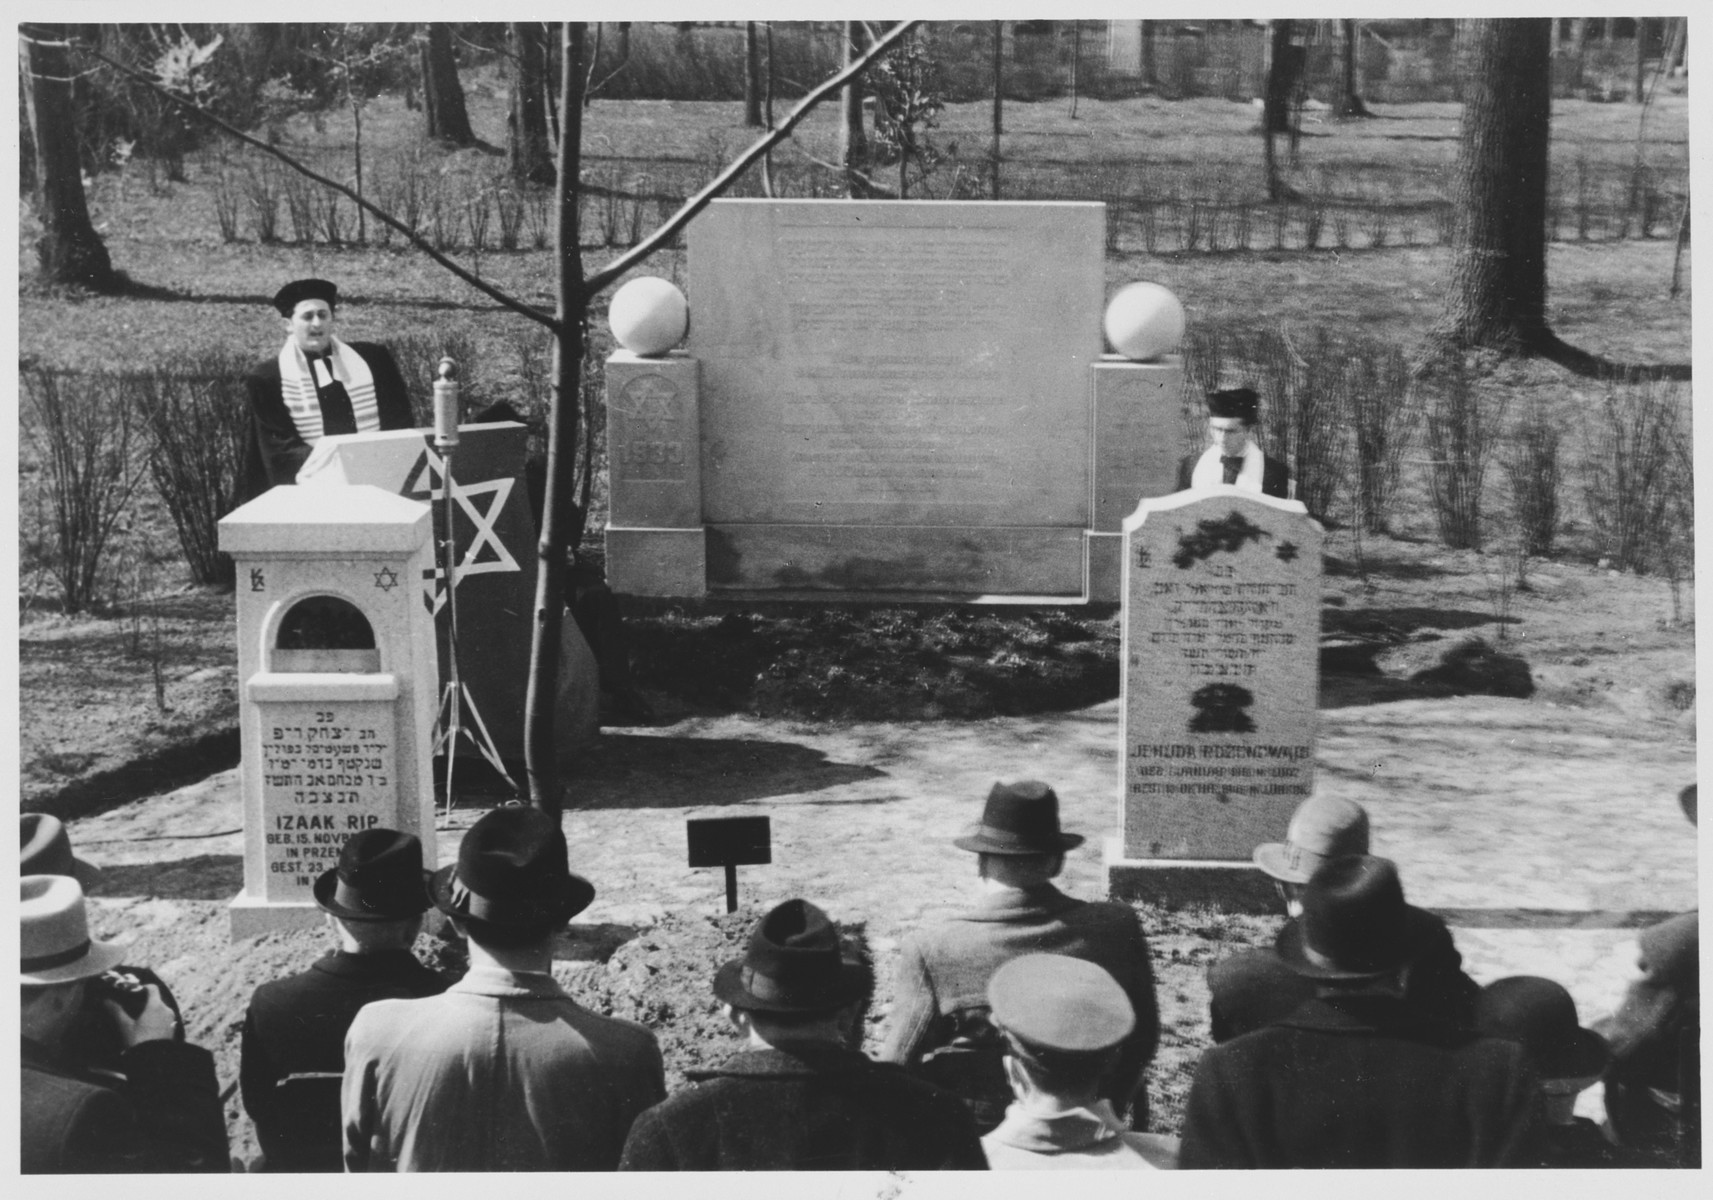 A rabbi delivers a speech at the rededication ceremony of the Jewish cemetery in Luebeck.